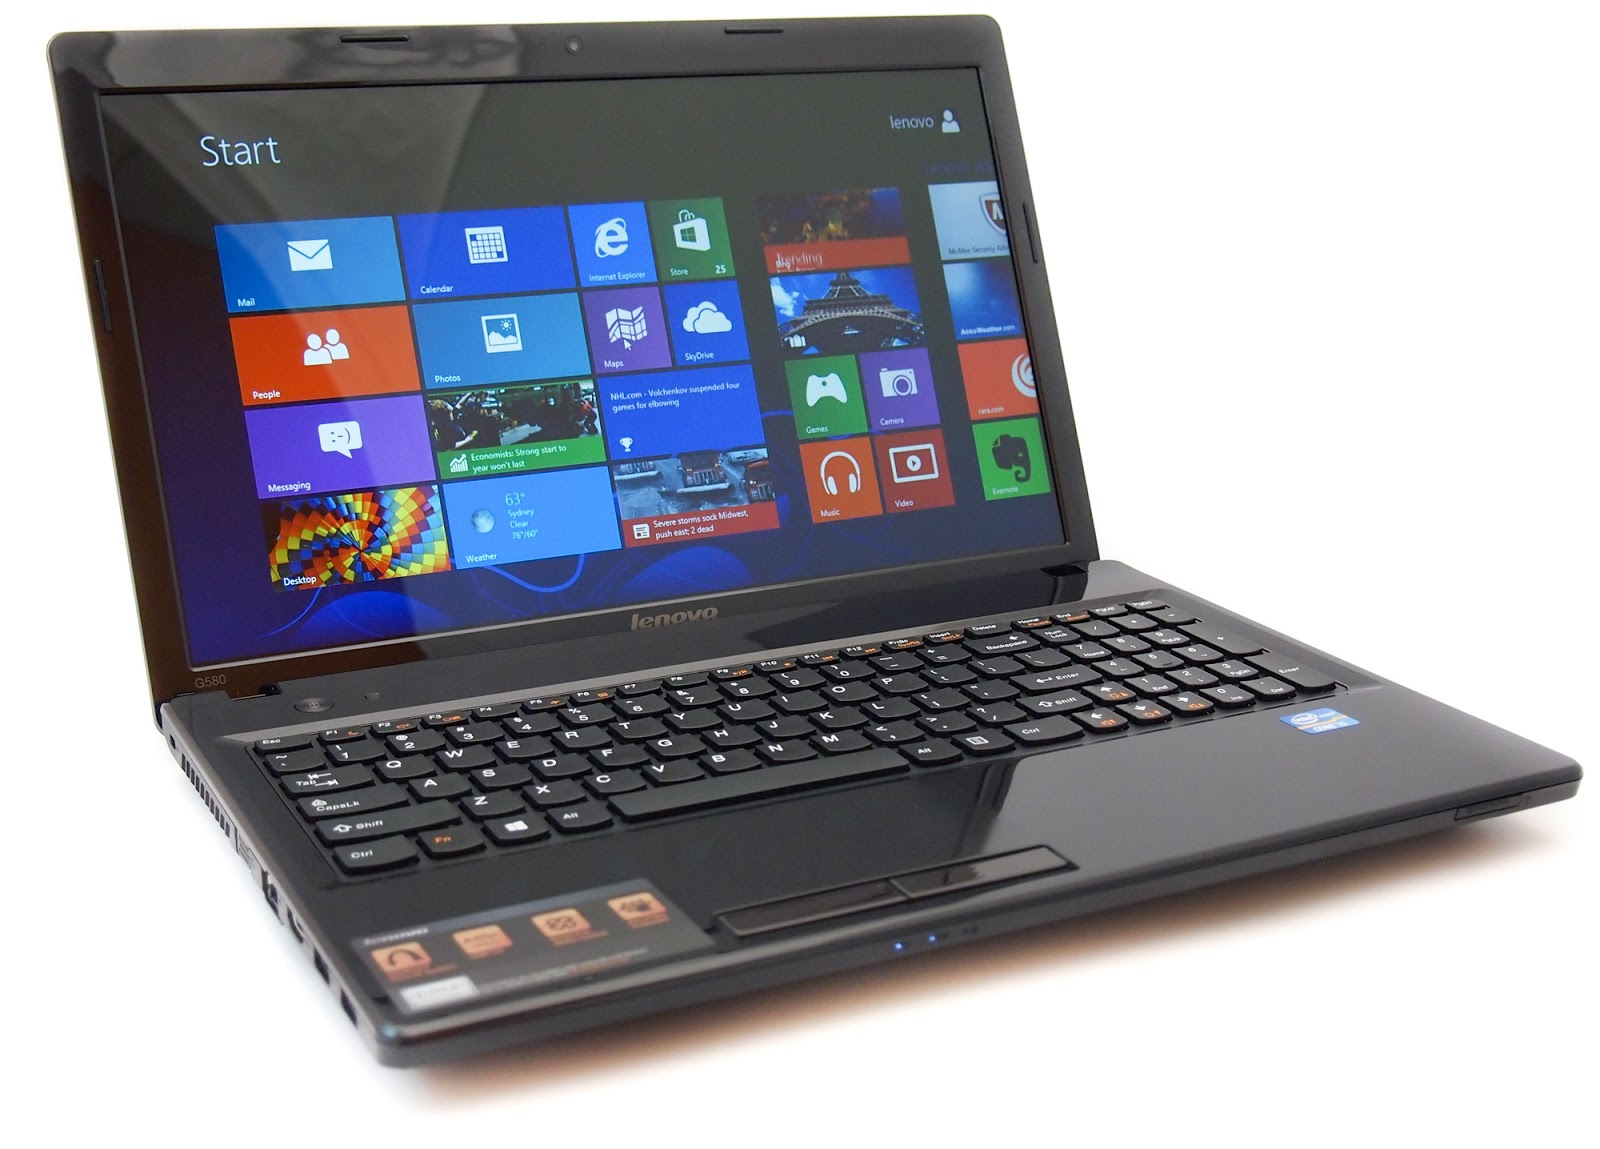 Lenovo g580 (20157) laptop wireless lan (wlan wi fi) wifi network.